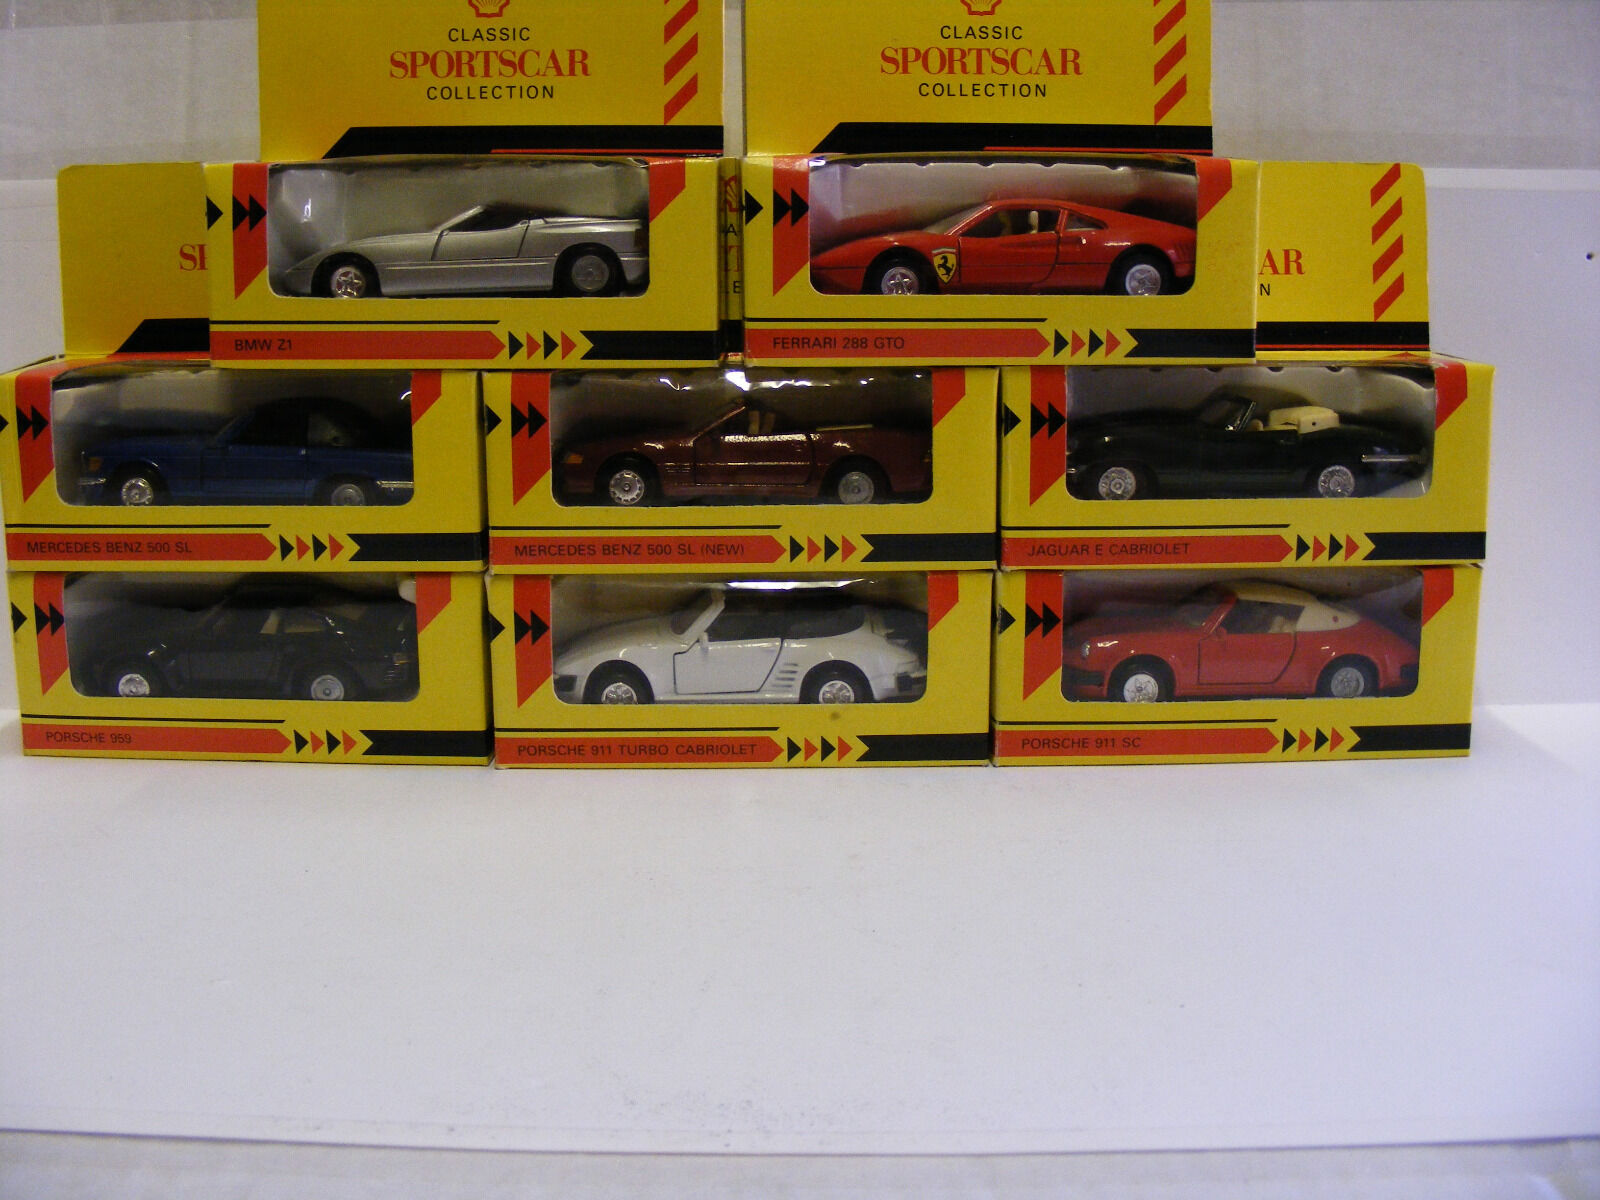 Shell Classic Sportscar collection, 1 38 scale.